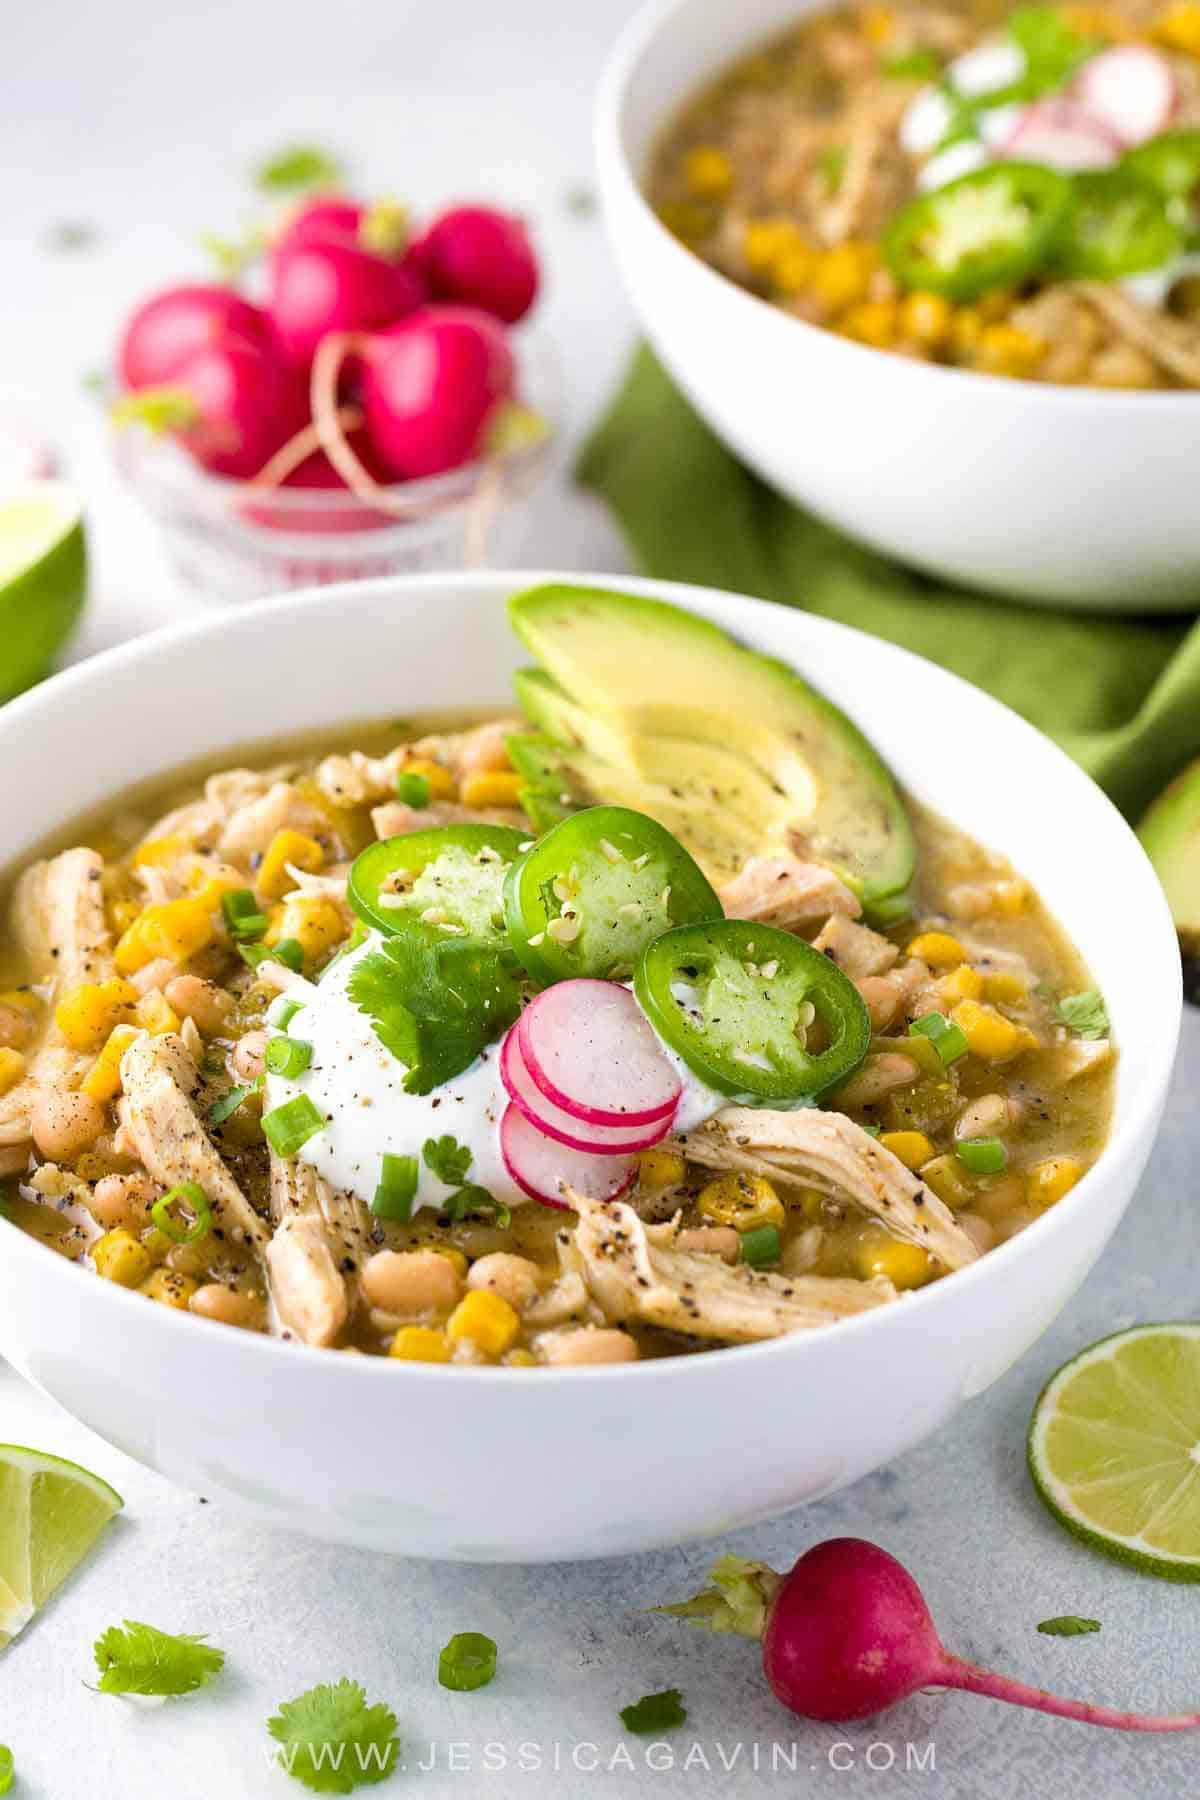 White bean chicken chili simmered in a crockpot with whole roasted jalapenos, tender beans, corn, and lean chicken breast. A healthy recipe pack with flavor and spice. #slowcooker #crockpot #instantpot #chili #chickenchili